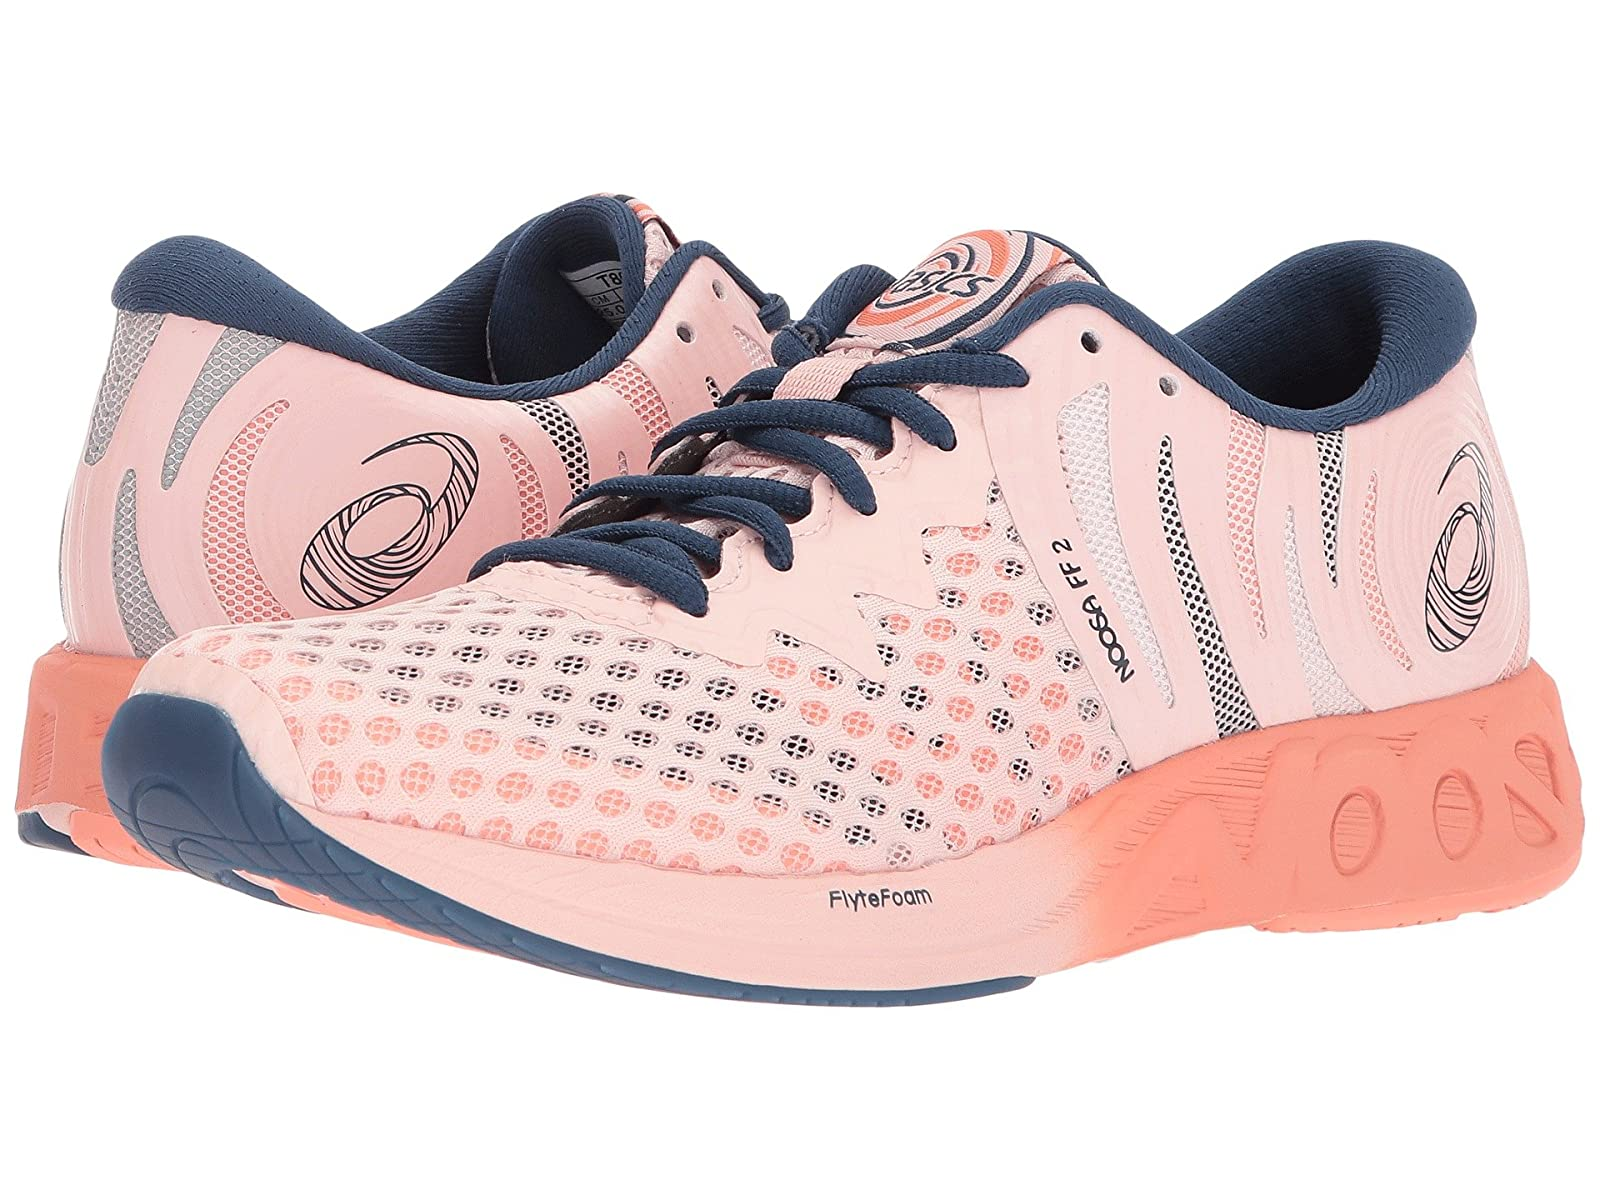 ASICS Noosa FF 2Atmospheric grades have affordable shoes